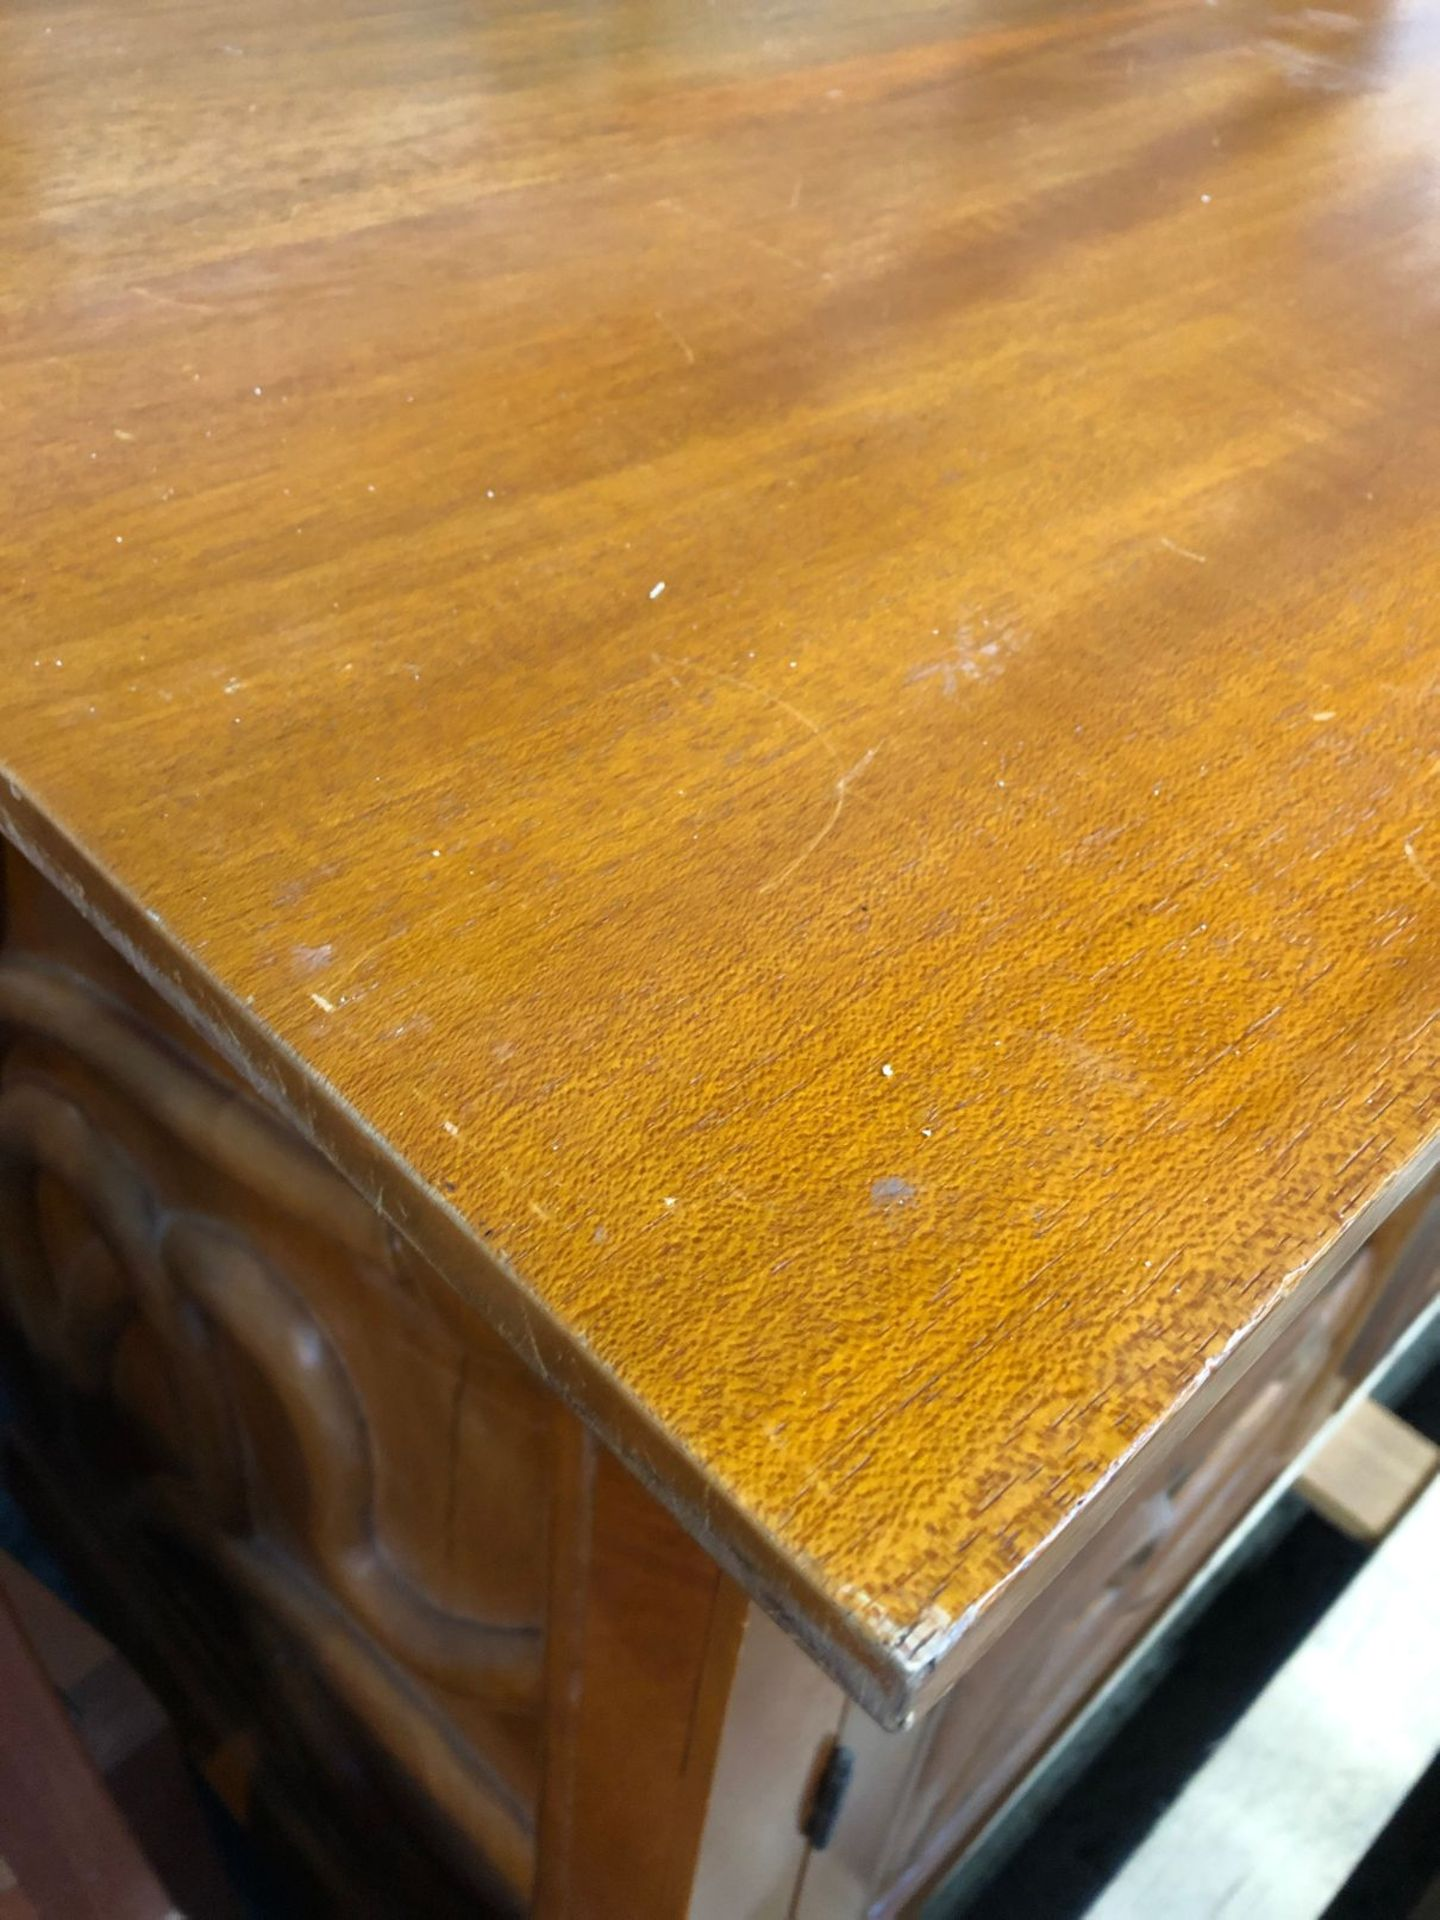 SOLID WOOD 2-DOOR 2-DRAWER FLORAL STYLE SIDEBOARD / CONDITION REPORT: SIGNS OF WEAR AND TEAR, CHIPS, - Image 3 of 4